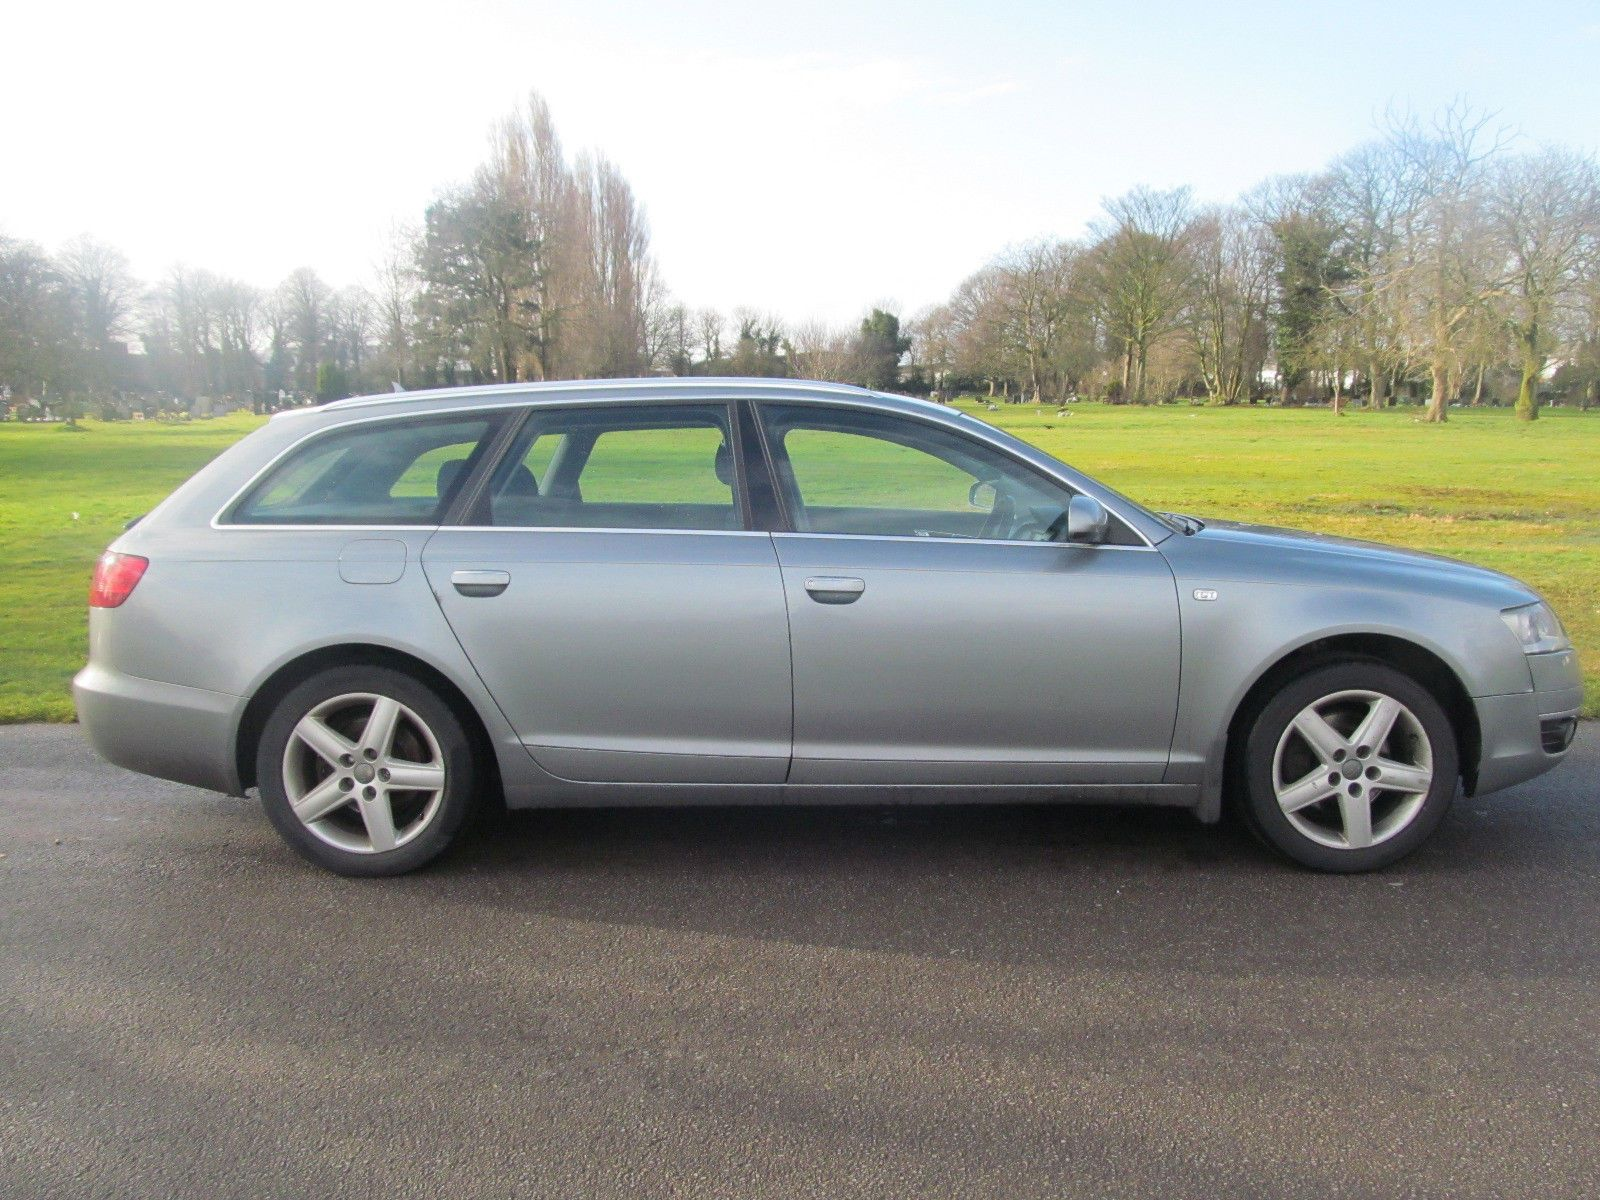 2008 audi a6 tdi spares repair salvage sold as non runner but starts